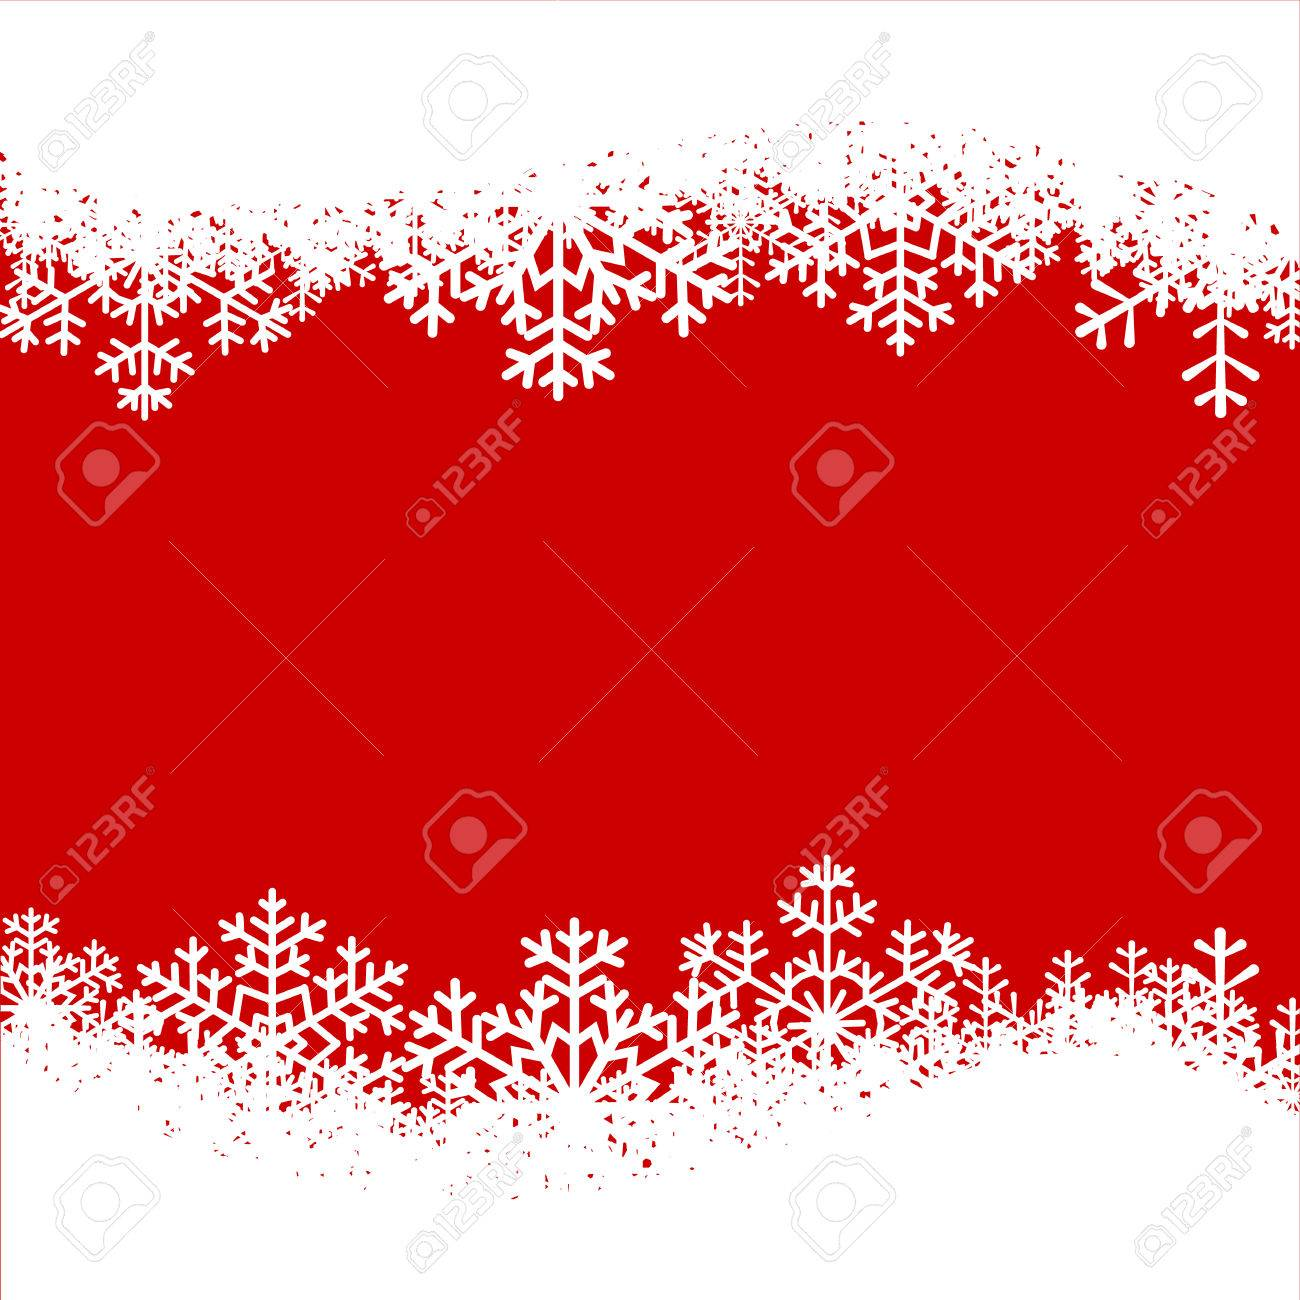 Christmas Card Border.Christmas Card With Snowflakes Border On Red Background